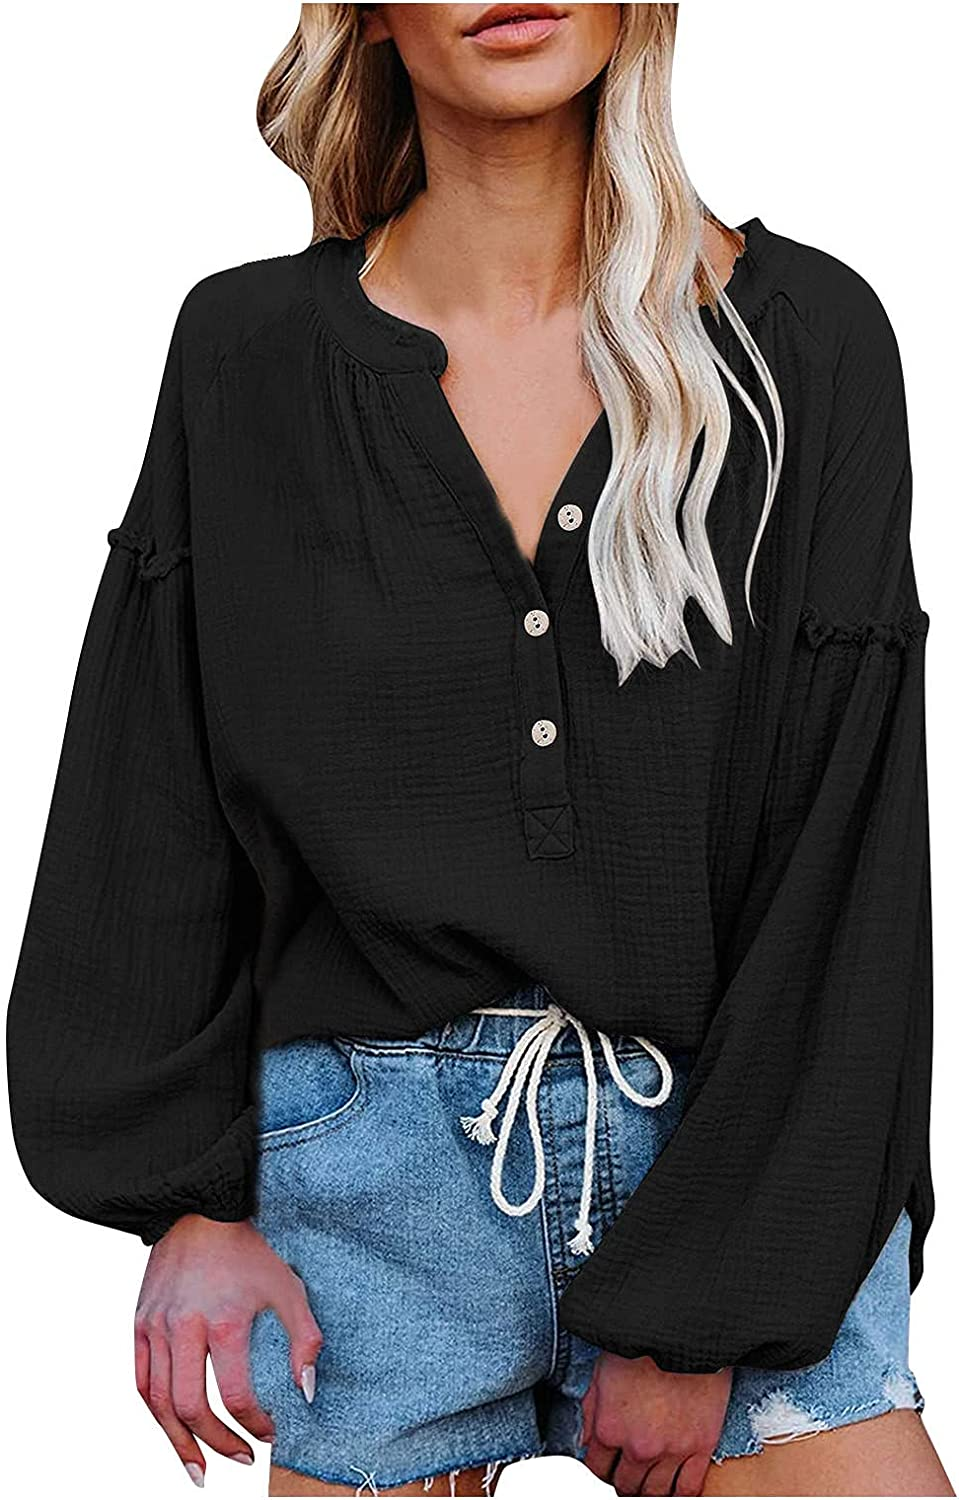 Blouses for Women Tops Fashion V-Neck Casual Loose Autumn Button-Down Shirt Lantern Sleeve Solid Color Splicing Pullover